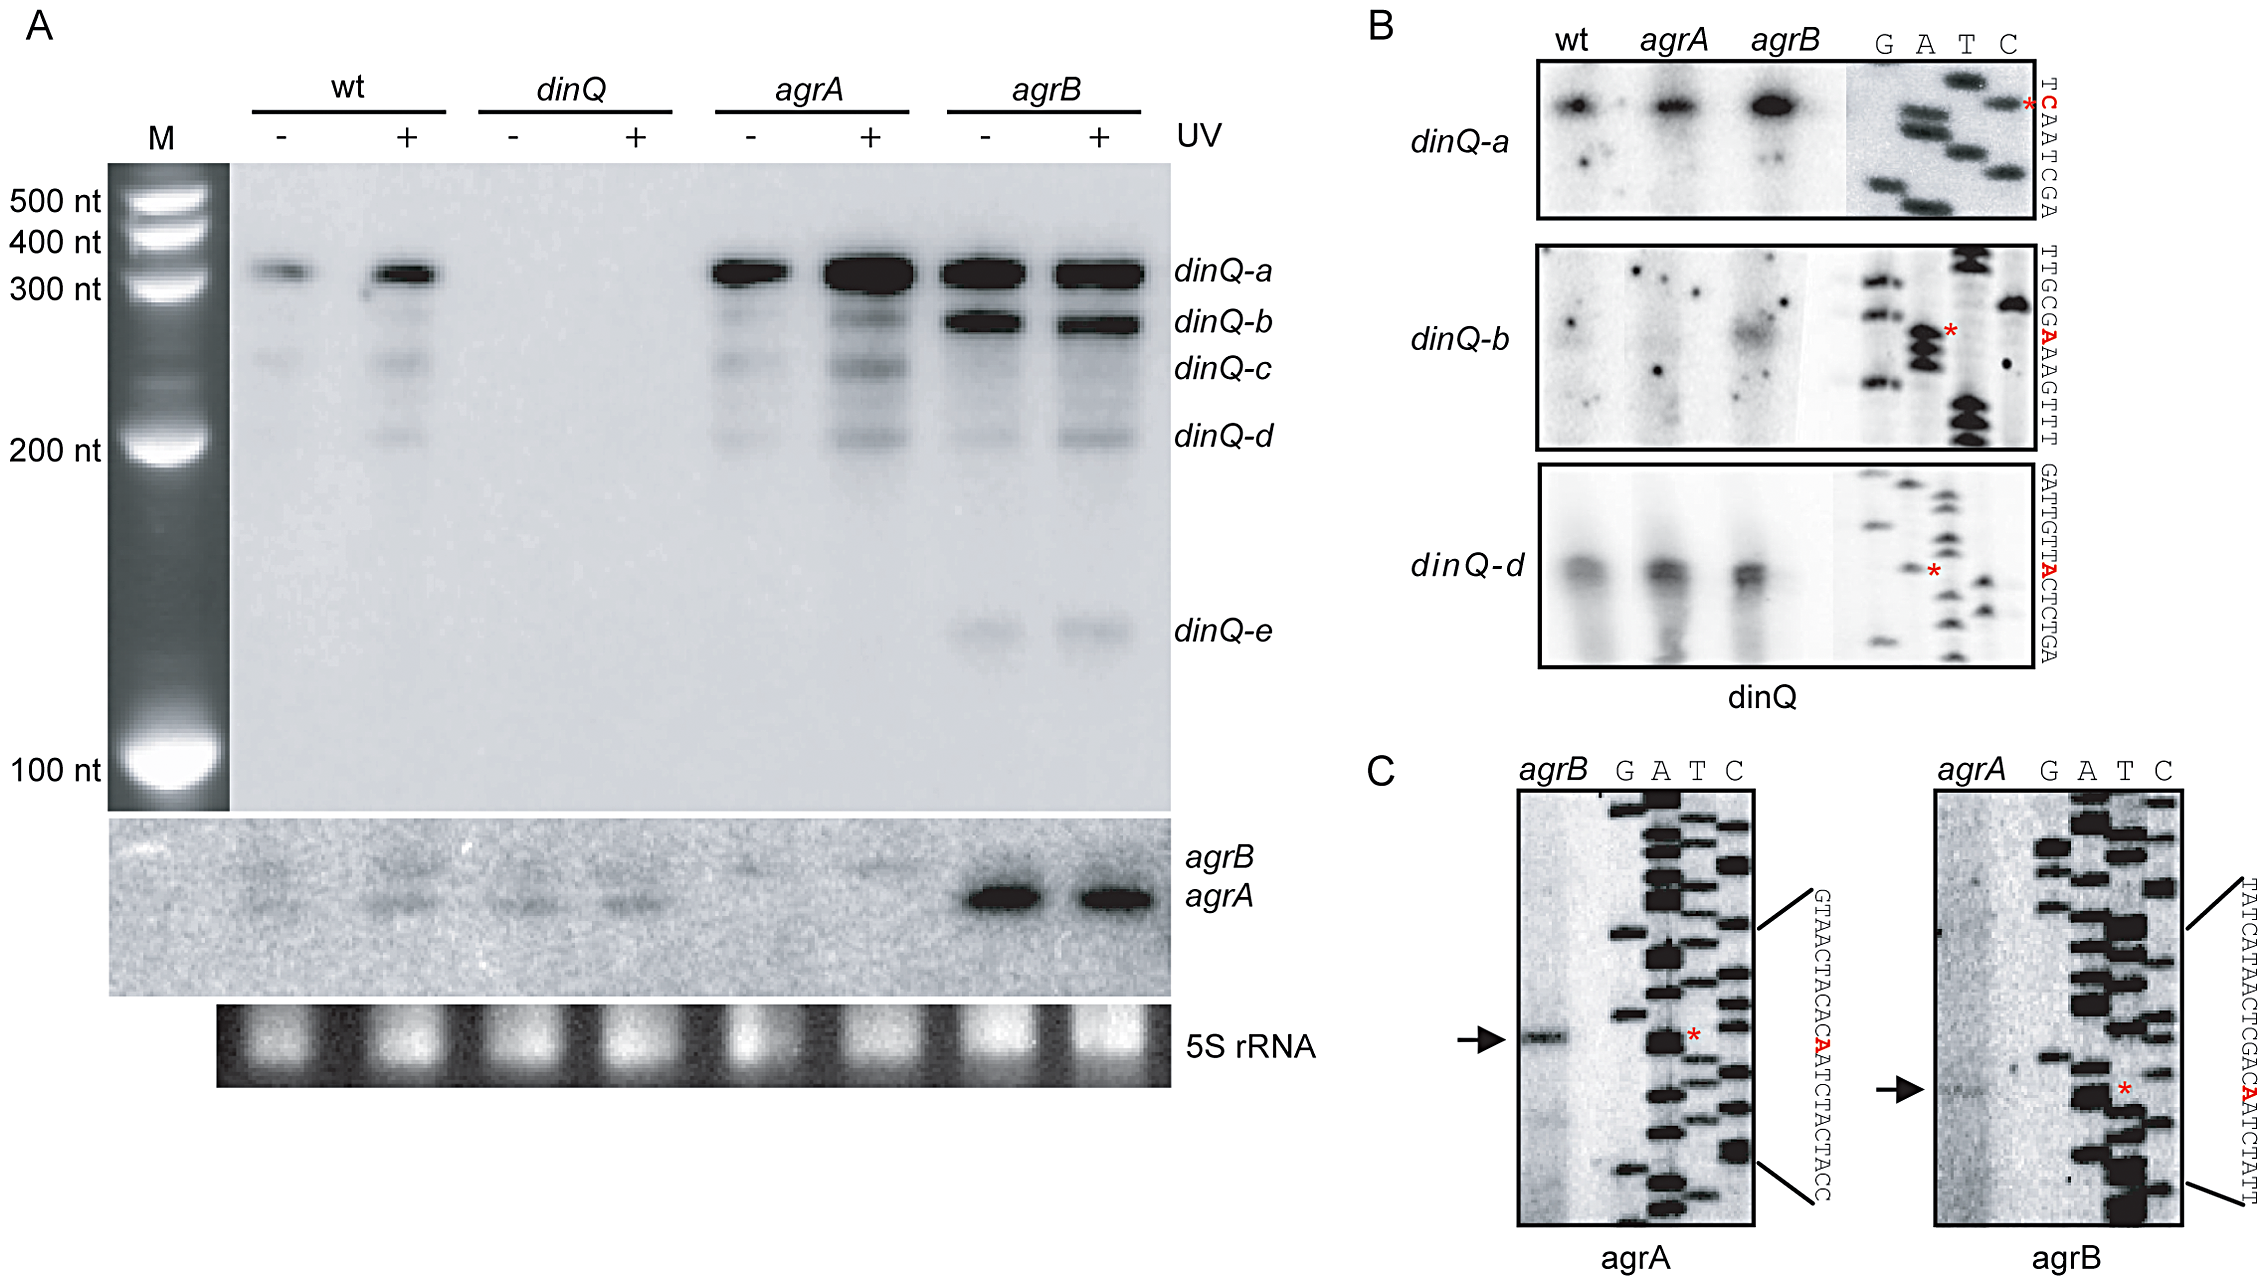 Expression pattern and transcription start of the <i>dinQ/agrAB</i> locus.